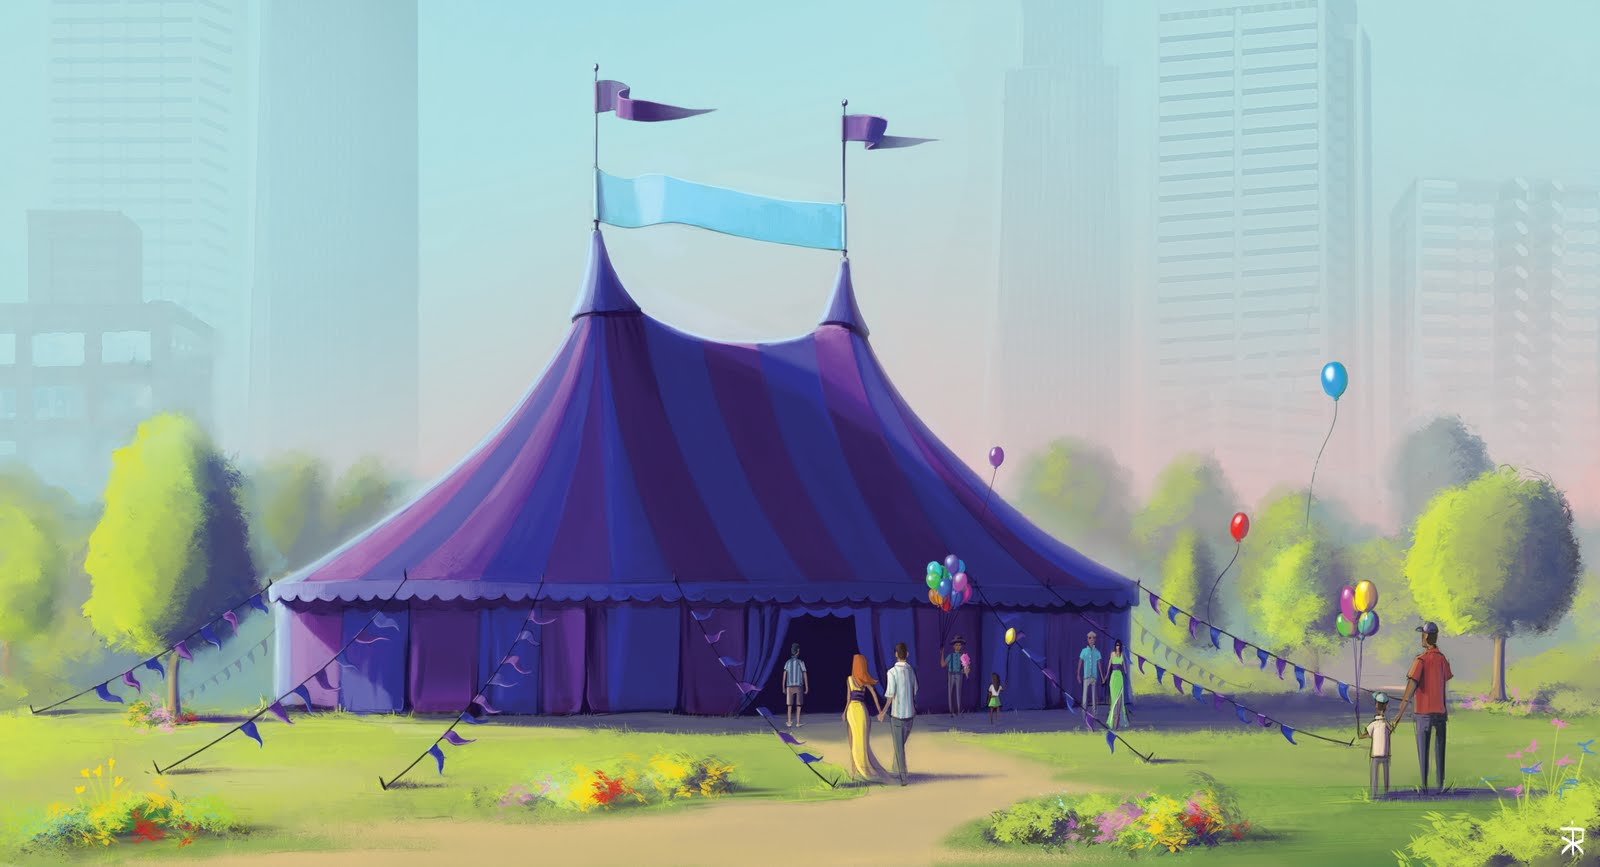 Recently Armbruster was awarded the contract to build a one of a kind Circus Tent for the Midnight Circus who performs in Chicago Illinois.  sc 1 st  Armbruster Tent Maker & Circus Tents from Armbruster | Armbruster Tent Maker